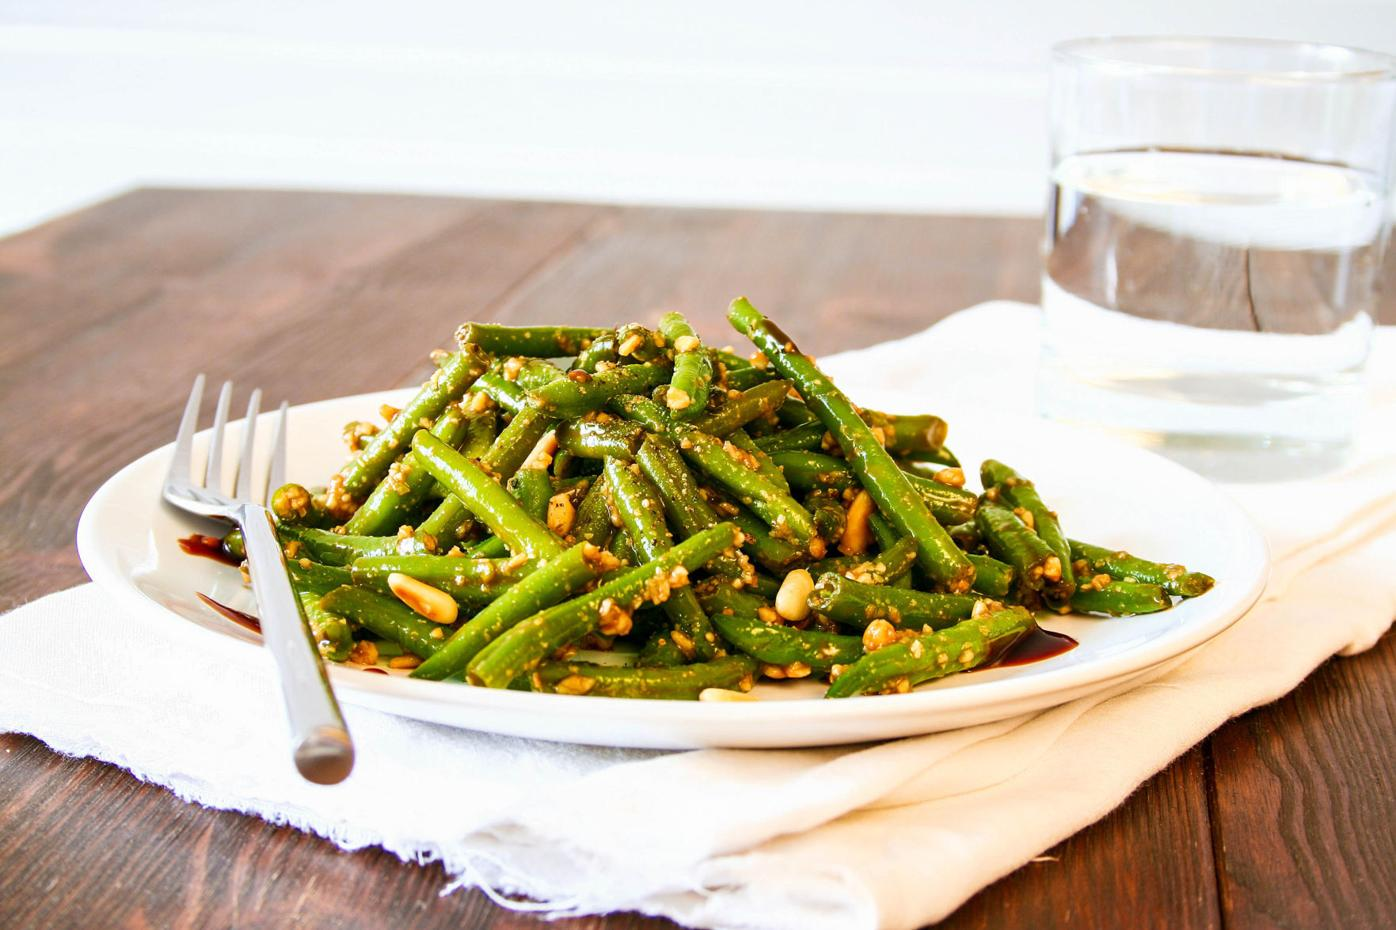 Green beans are an excellent source of nutrition